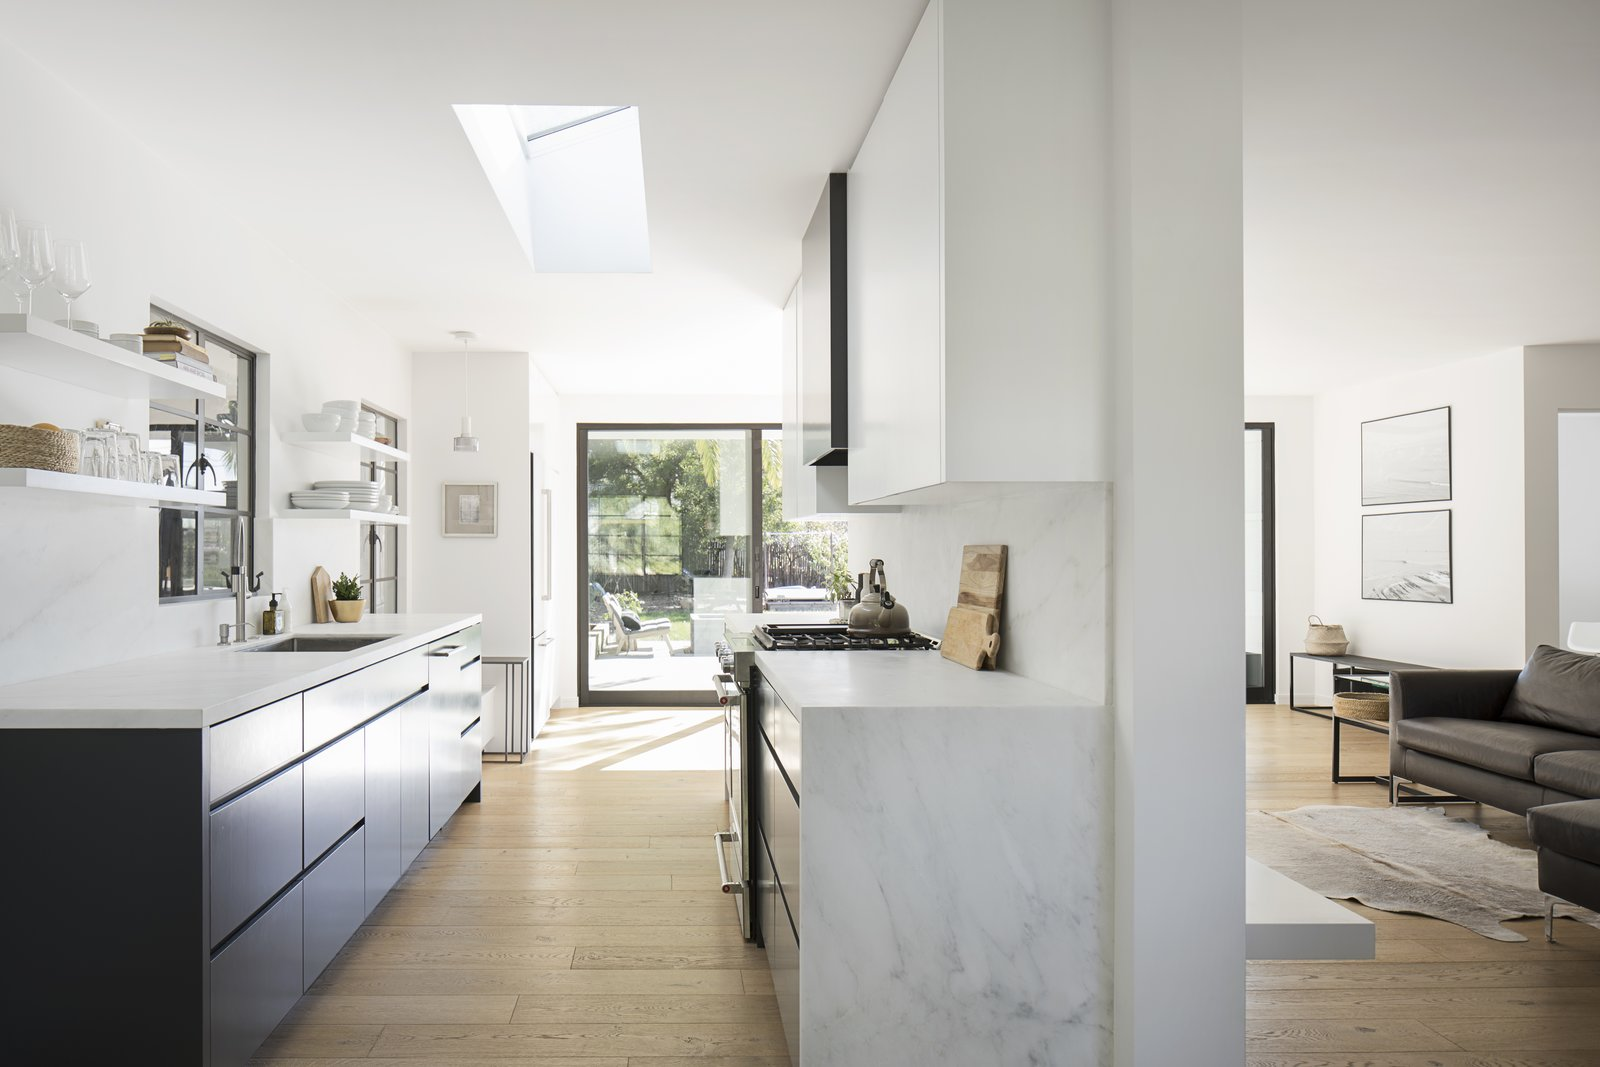 Tagged: Kitchen, Drop In Sink, and Light Hardwood Floor.  Vista De la Cumbra by ANACAPA